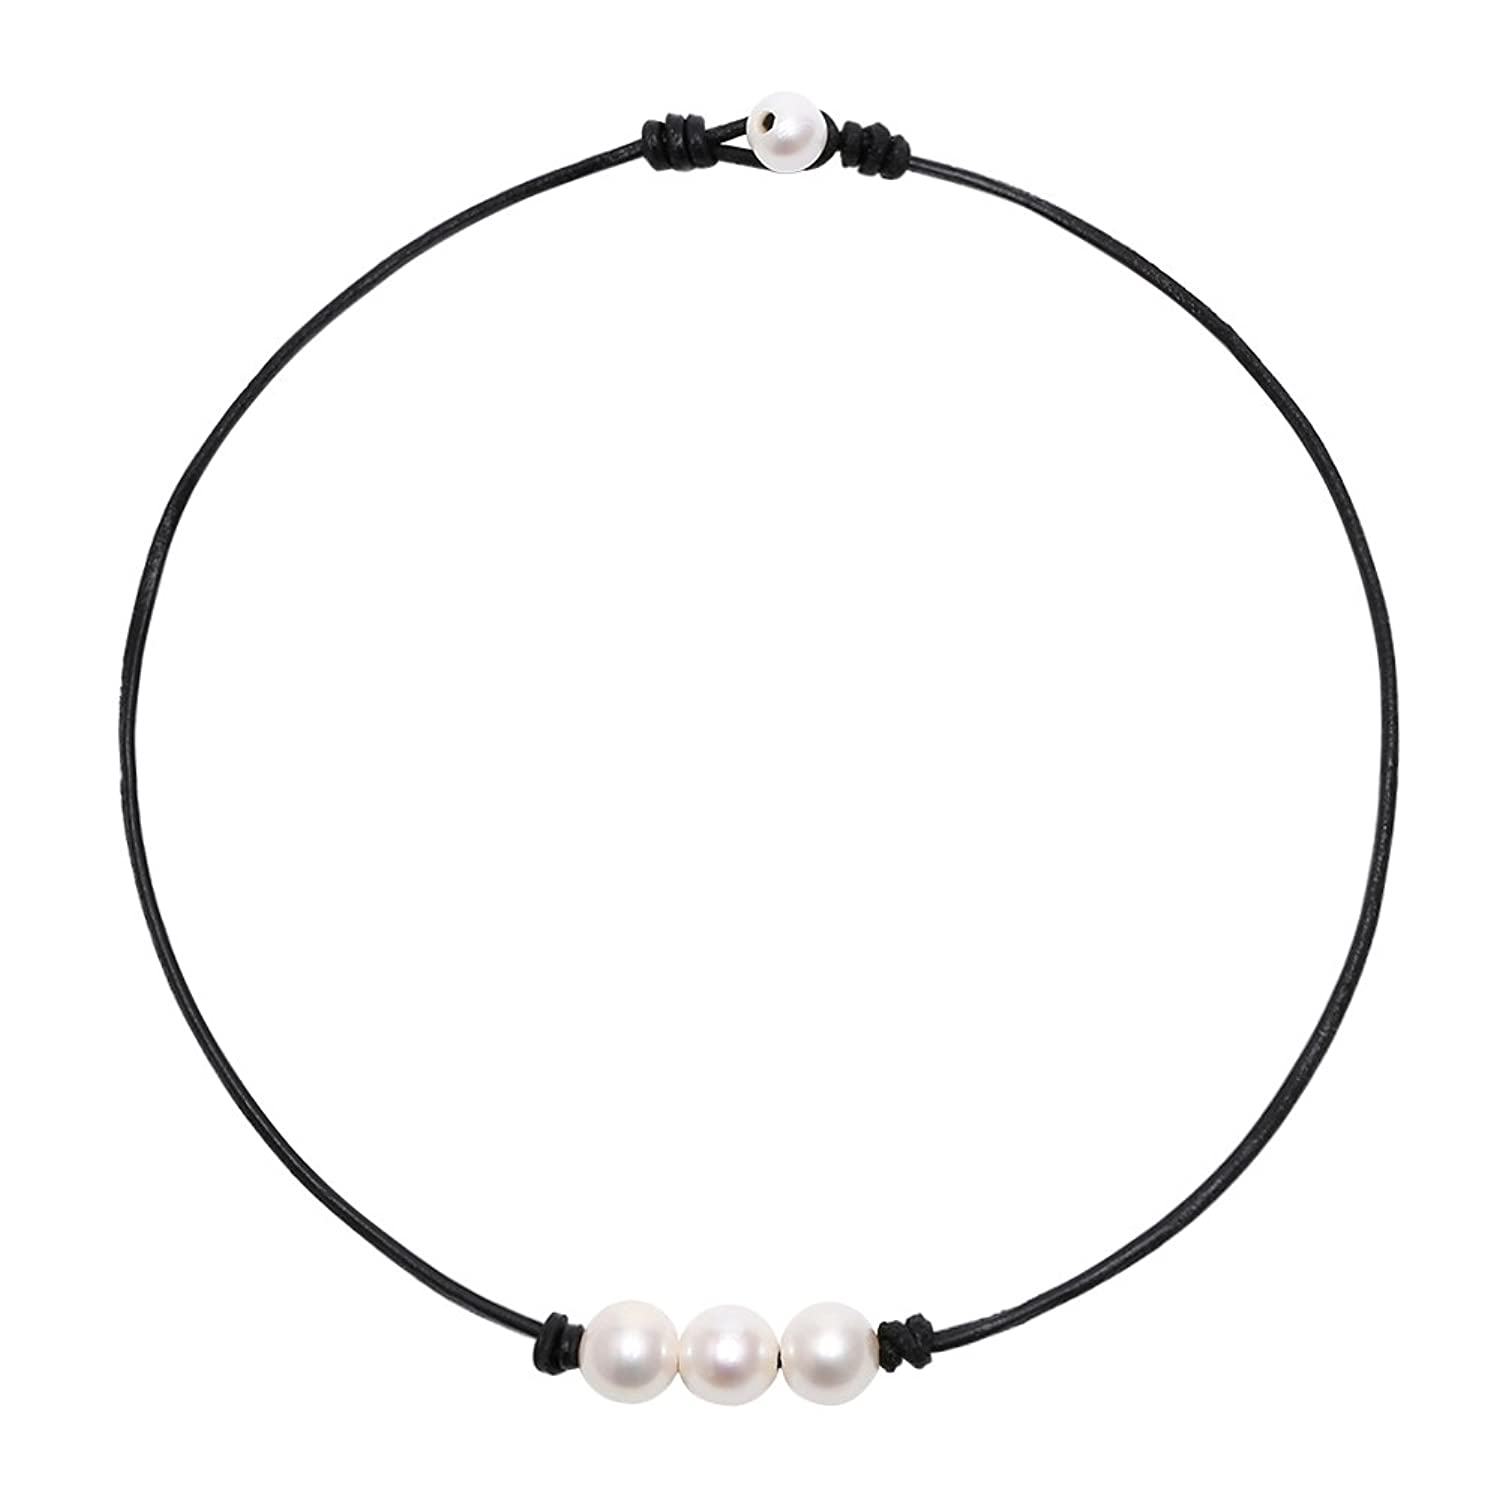 Amazon: White Pearl Choker Necklace With Three Beads On Genuine Leather  Jewelry For Girls Women 16